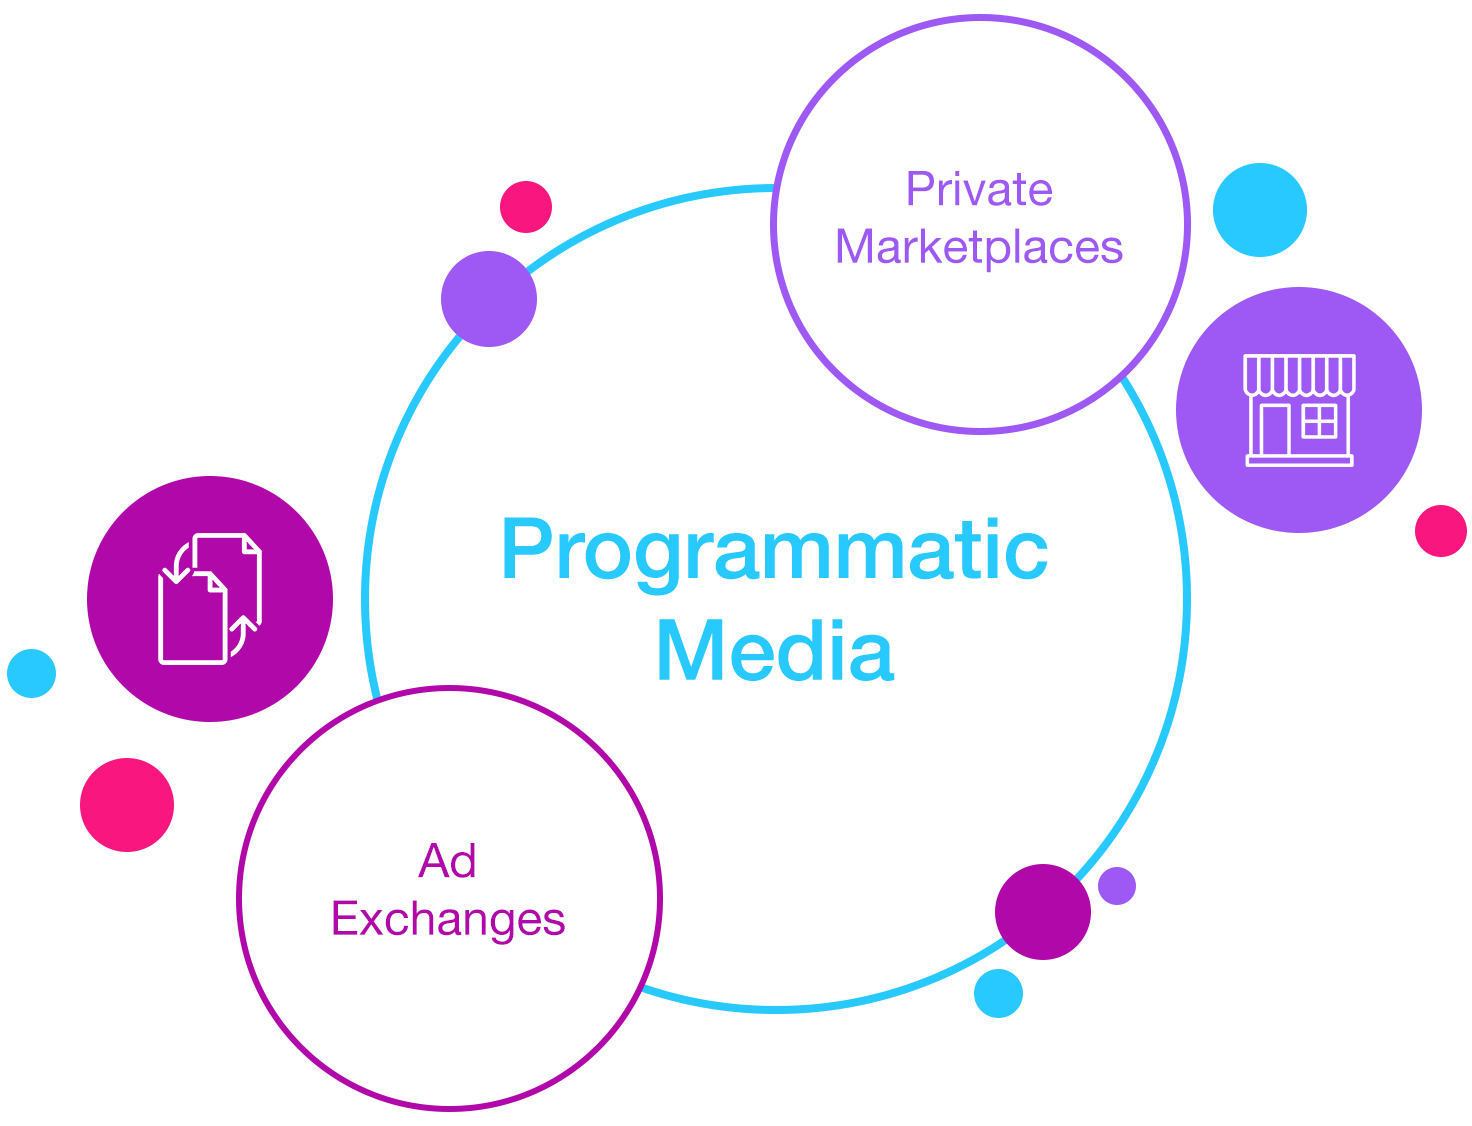 Programmatic media buying through ad exchanges and private marketplaces